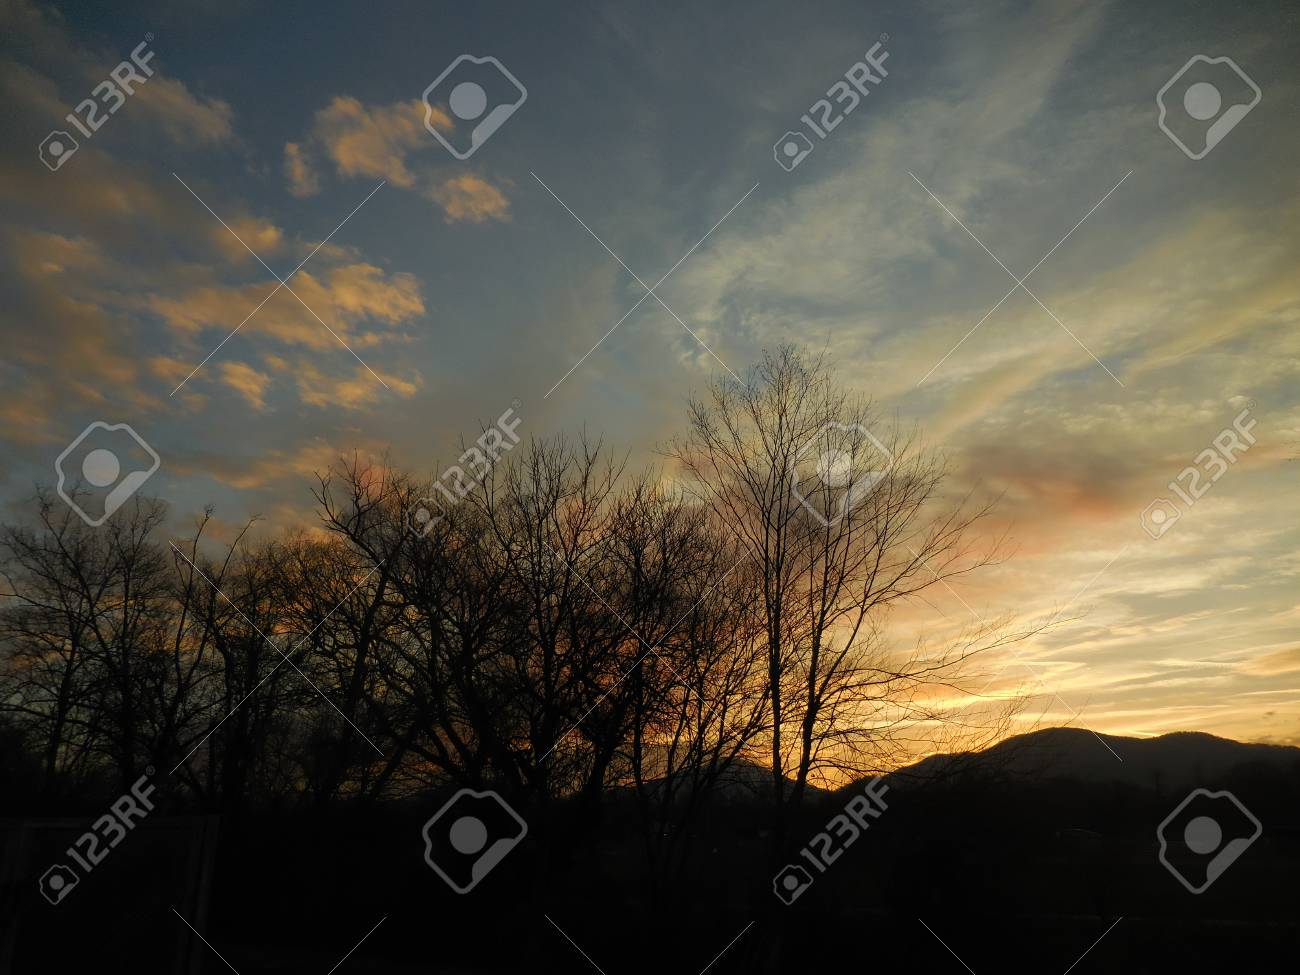 Sunrise in the mountains Stock Photo - 79150032